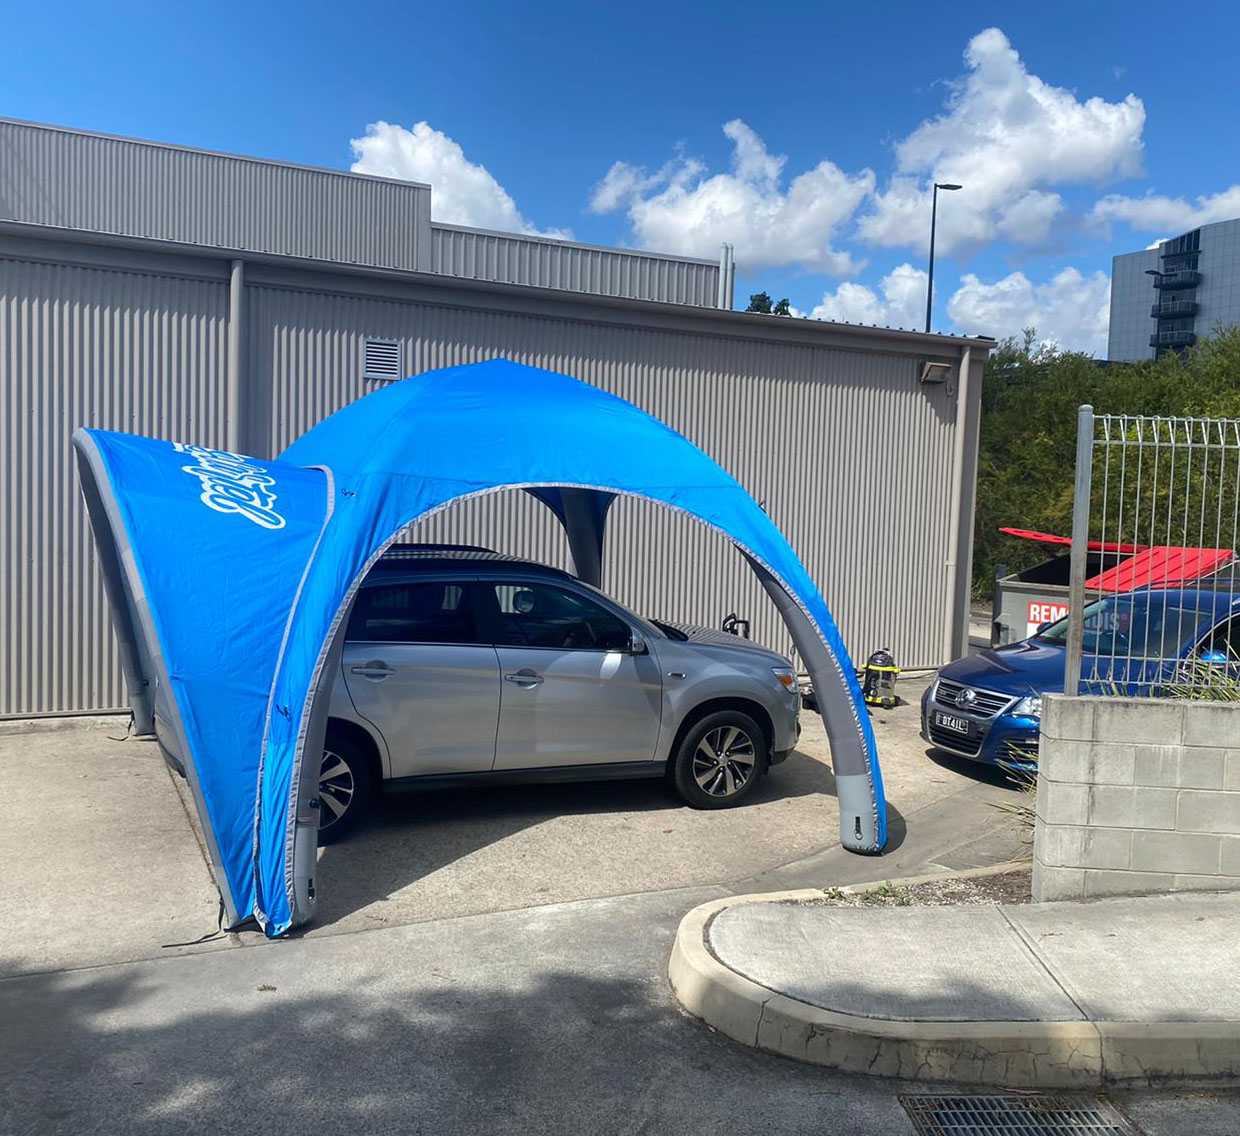 13x13ft Inflatable canopy tent, pop up trade show tent